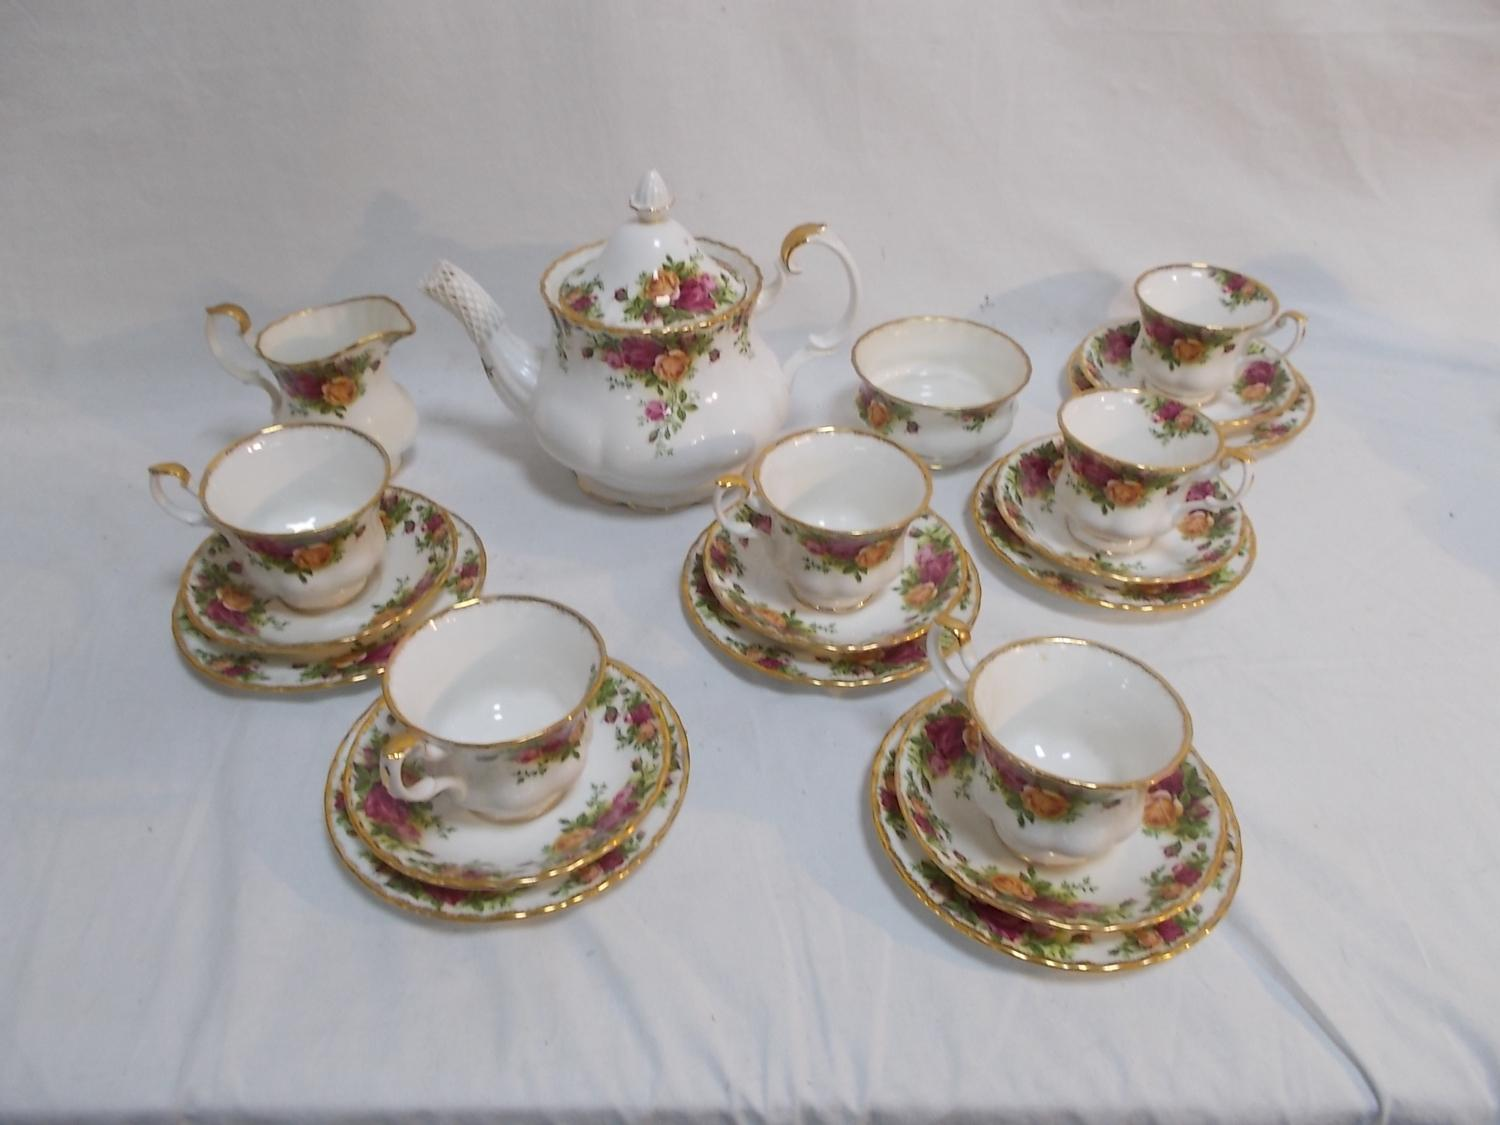 Royal Albert old country rose, tea set to include cups/saucers teapot, sugar bowl & creamer.  image